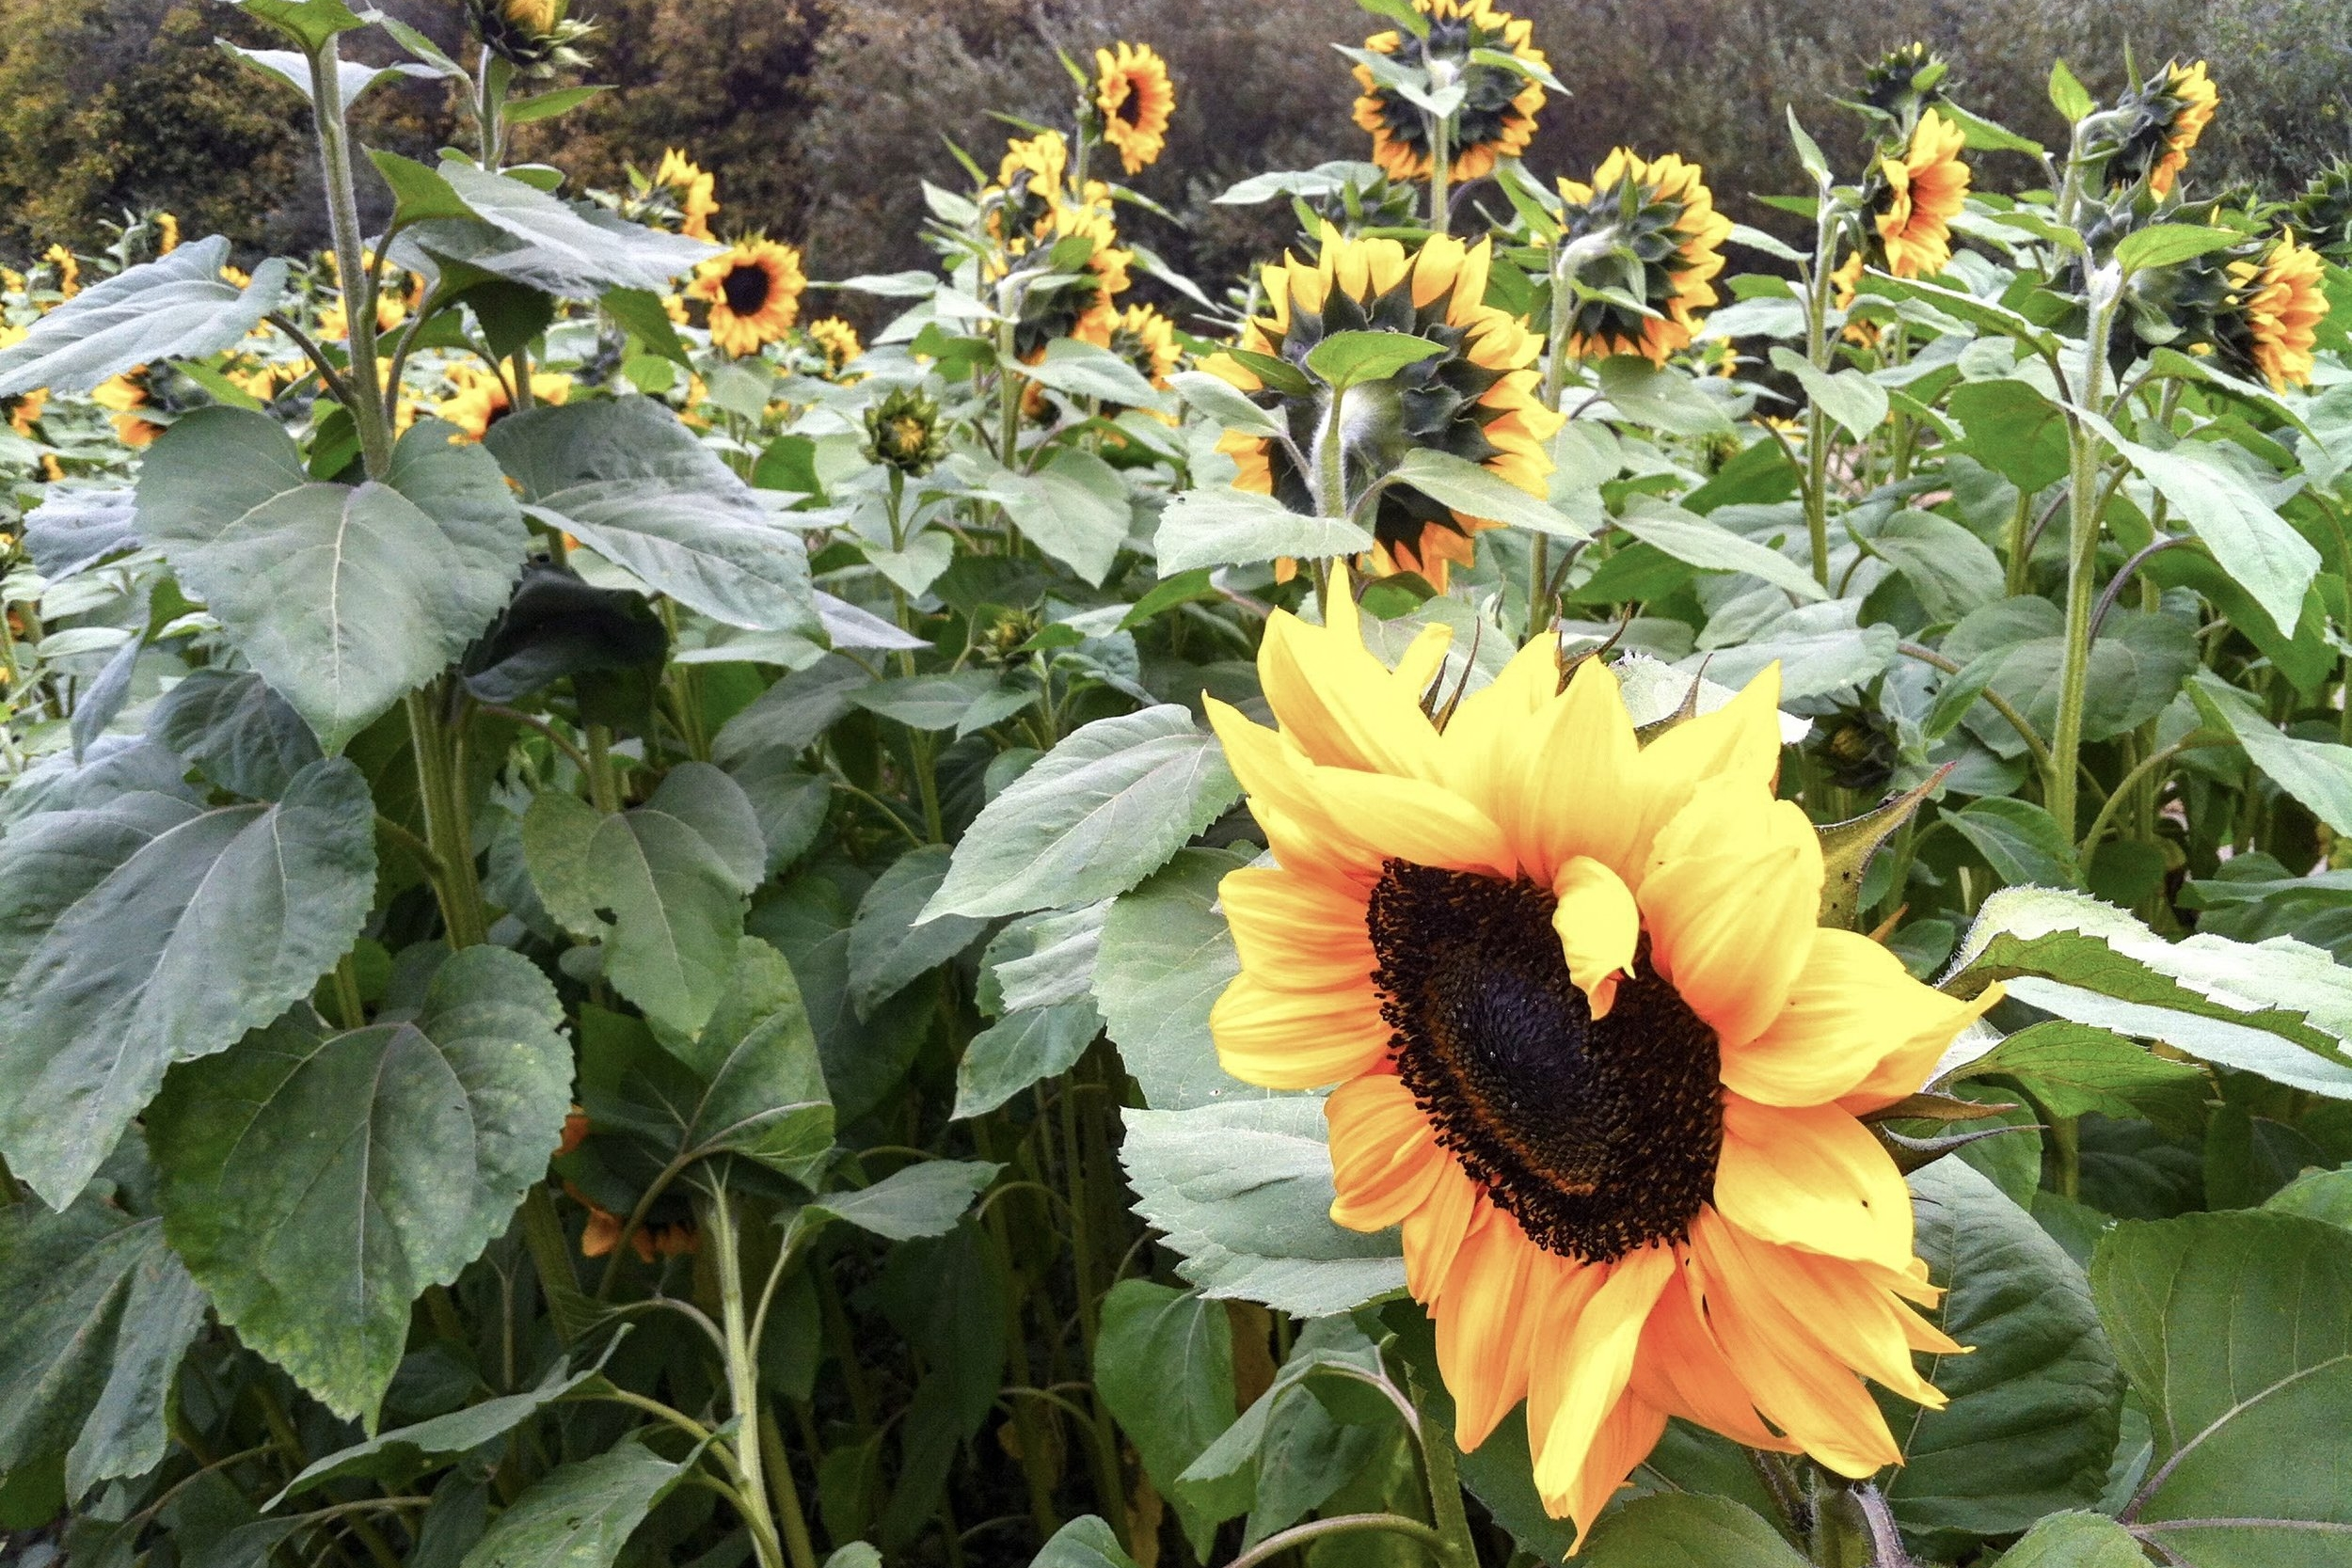 Snap a photo with these tall sunflowers at Avila Valley Barn.